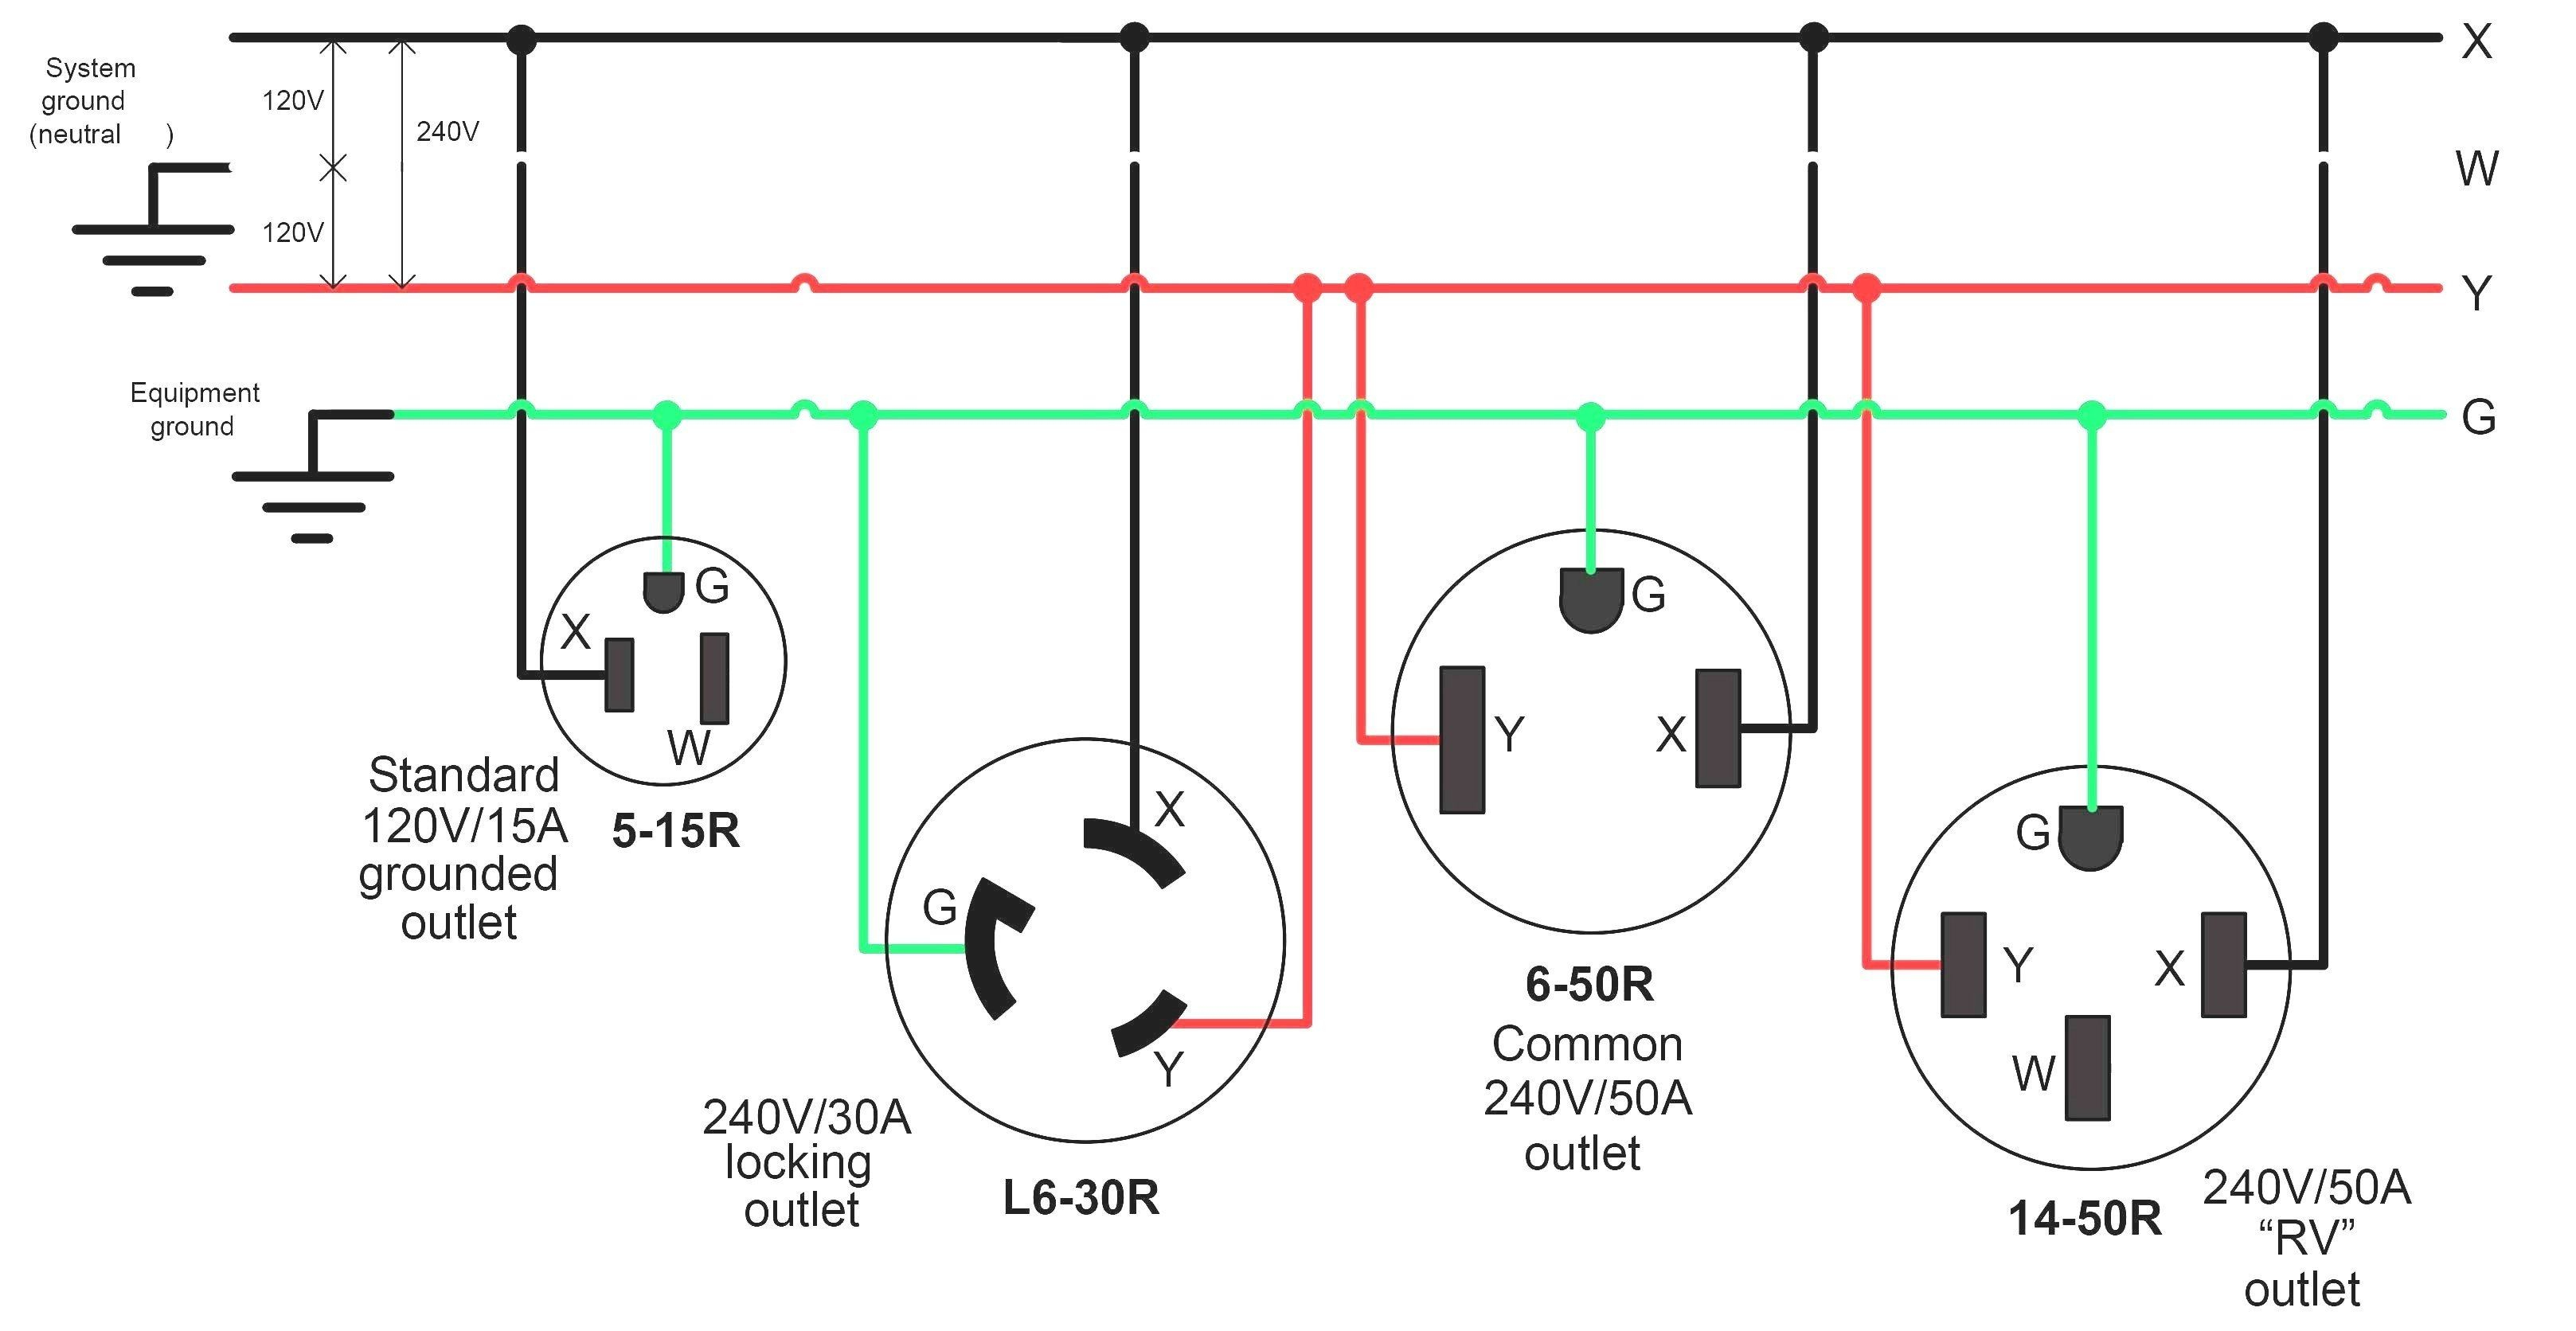 Ac Power Plugs Wire Diagram - All Kind Of Wiring Diagrams • Within - Electrical Plug Wiring Diagram